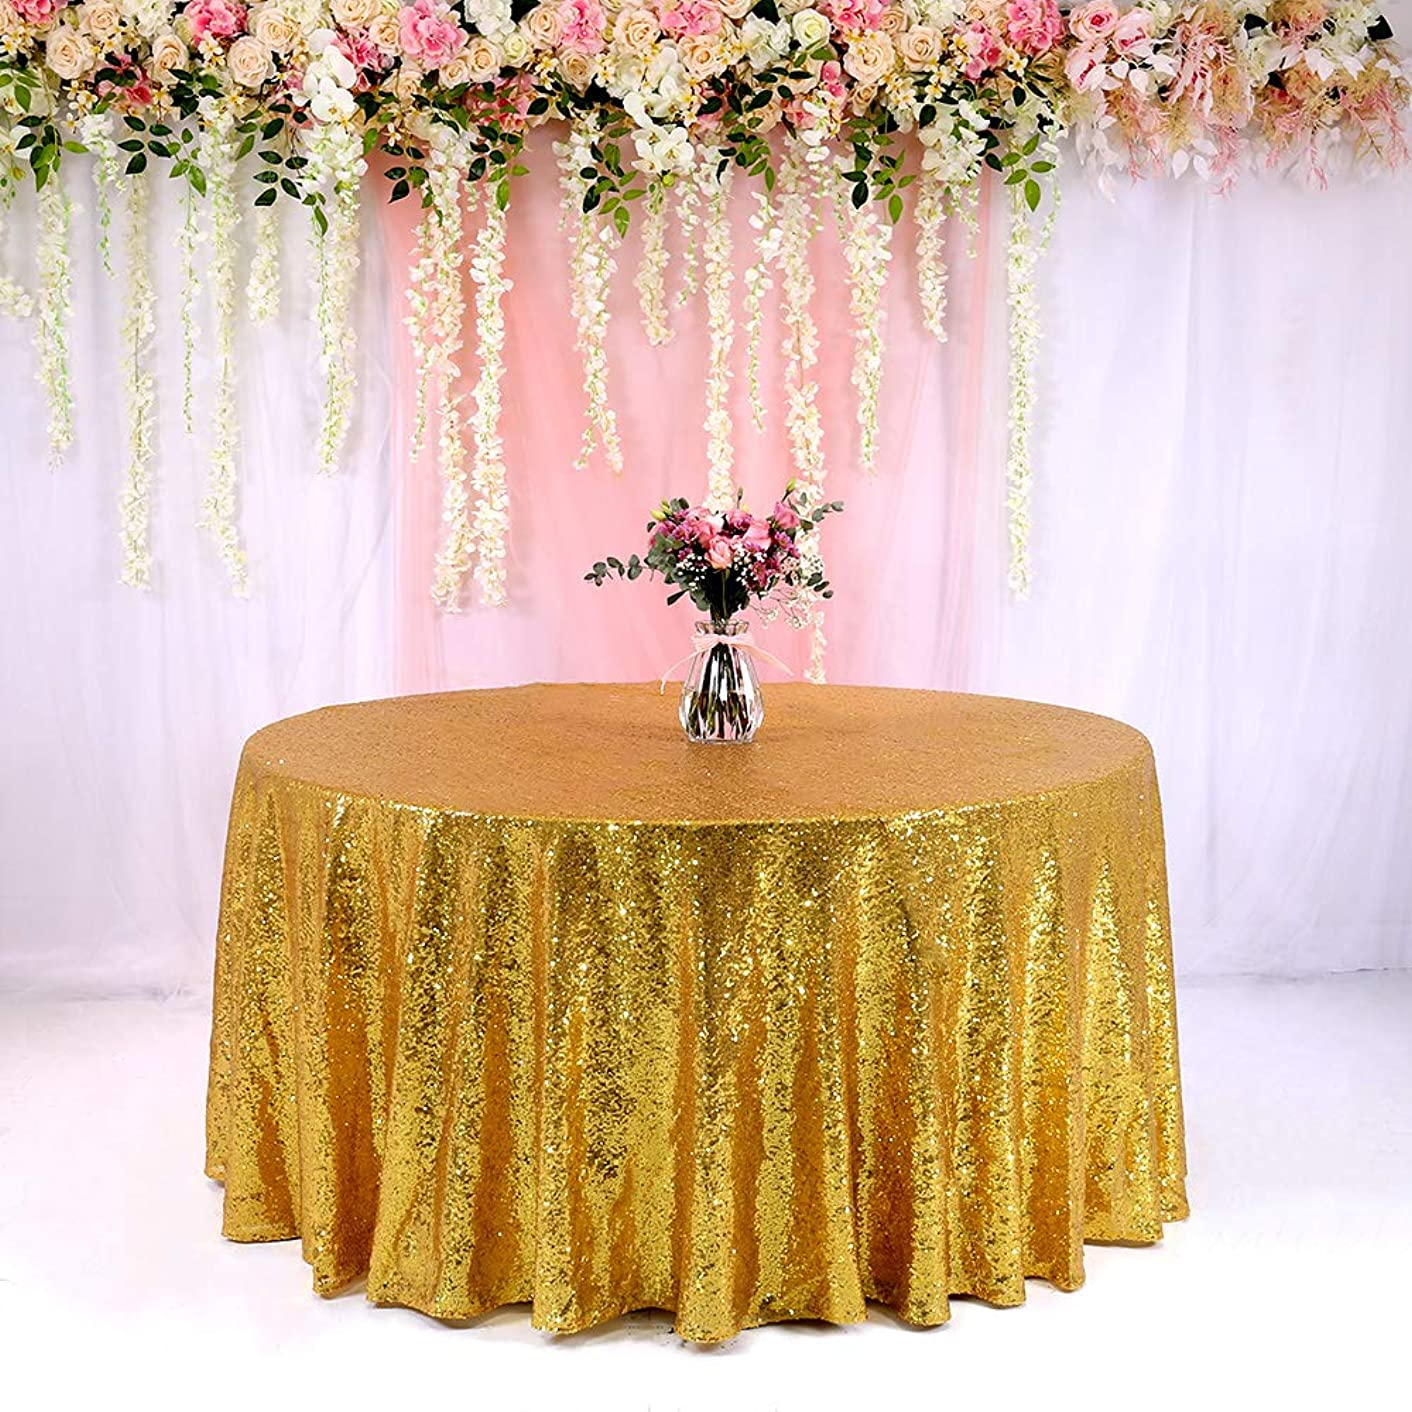 BalsaCircle TRLYC 132-Inch Round Sequin Tablecloth for Wedding Happy New Year 6FT Table Cloth-Gold